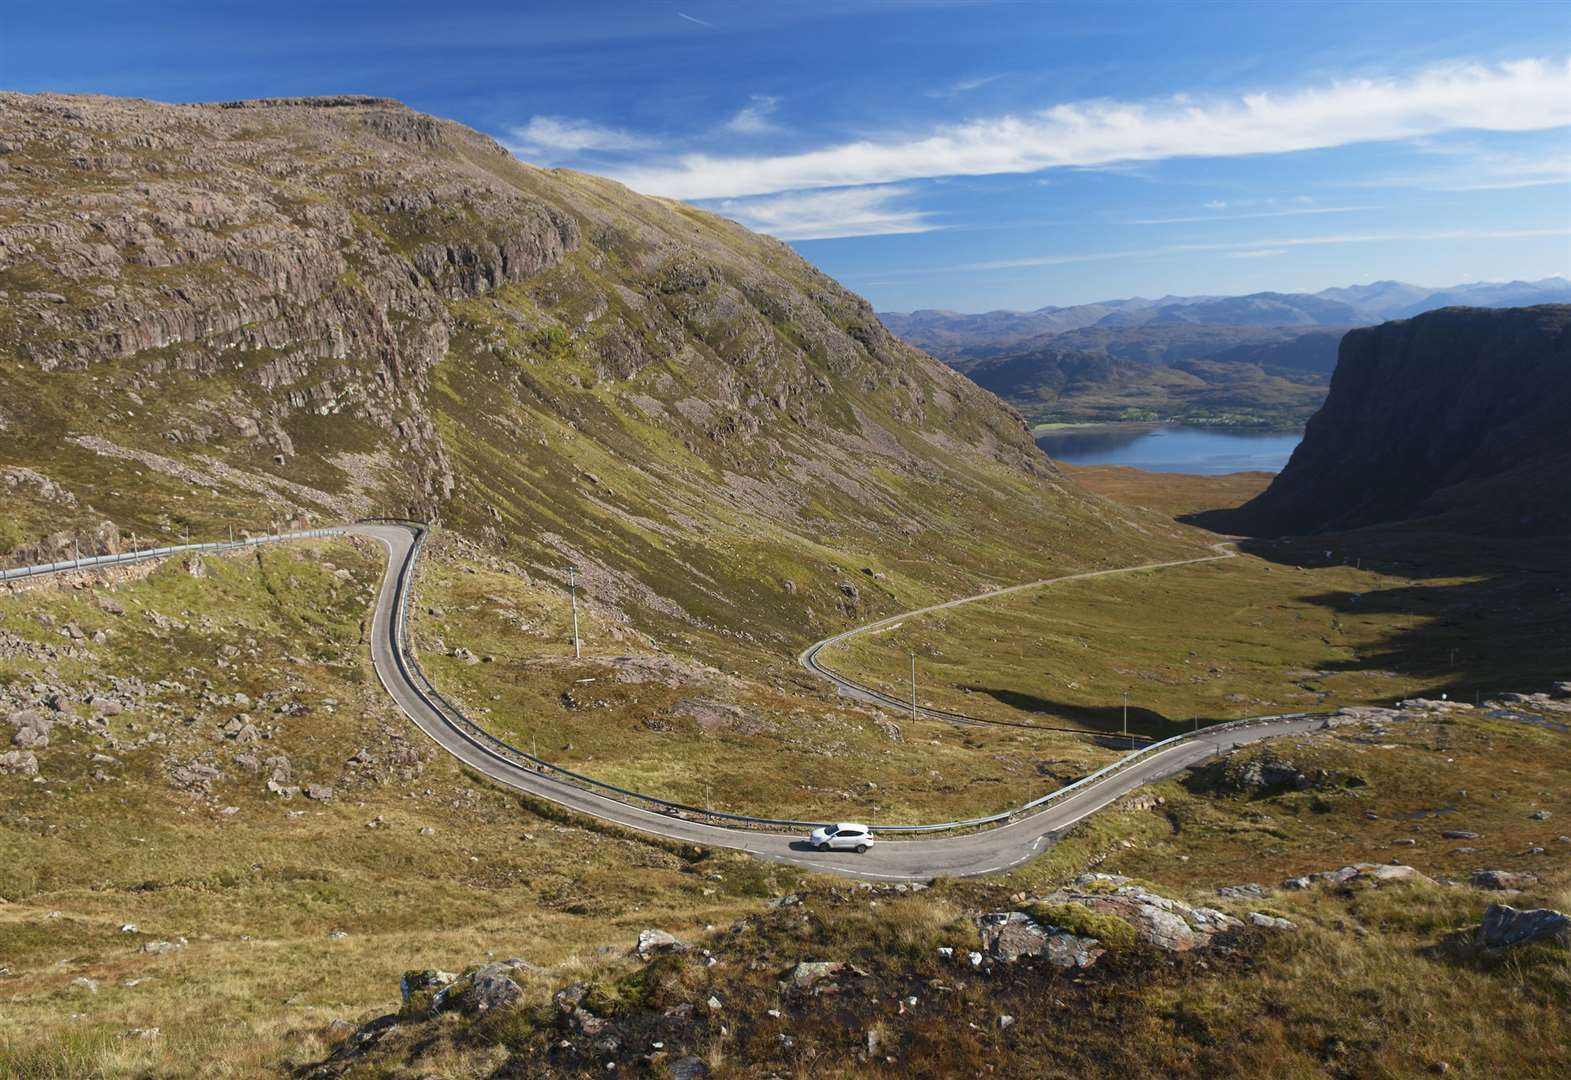 Plan for Applecross targets significant challenges